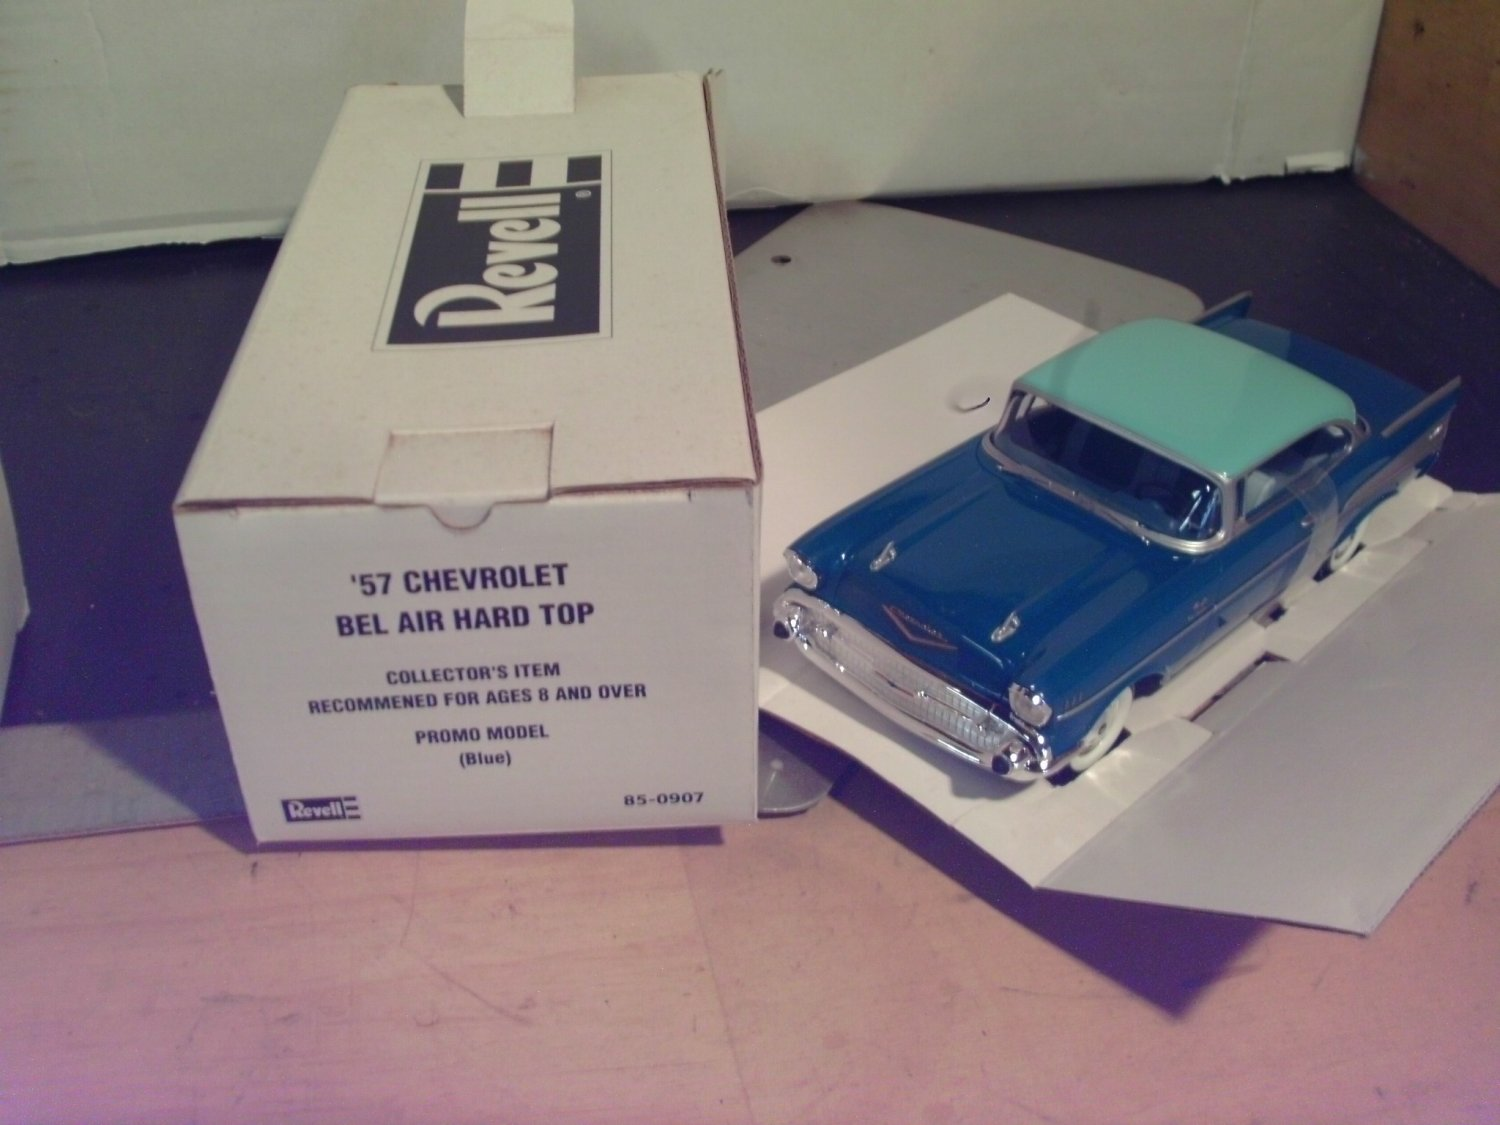 1957 Chevrolet Bel-Air Promo Model by Revell 1:24 scale